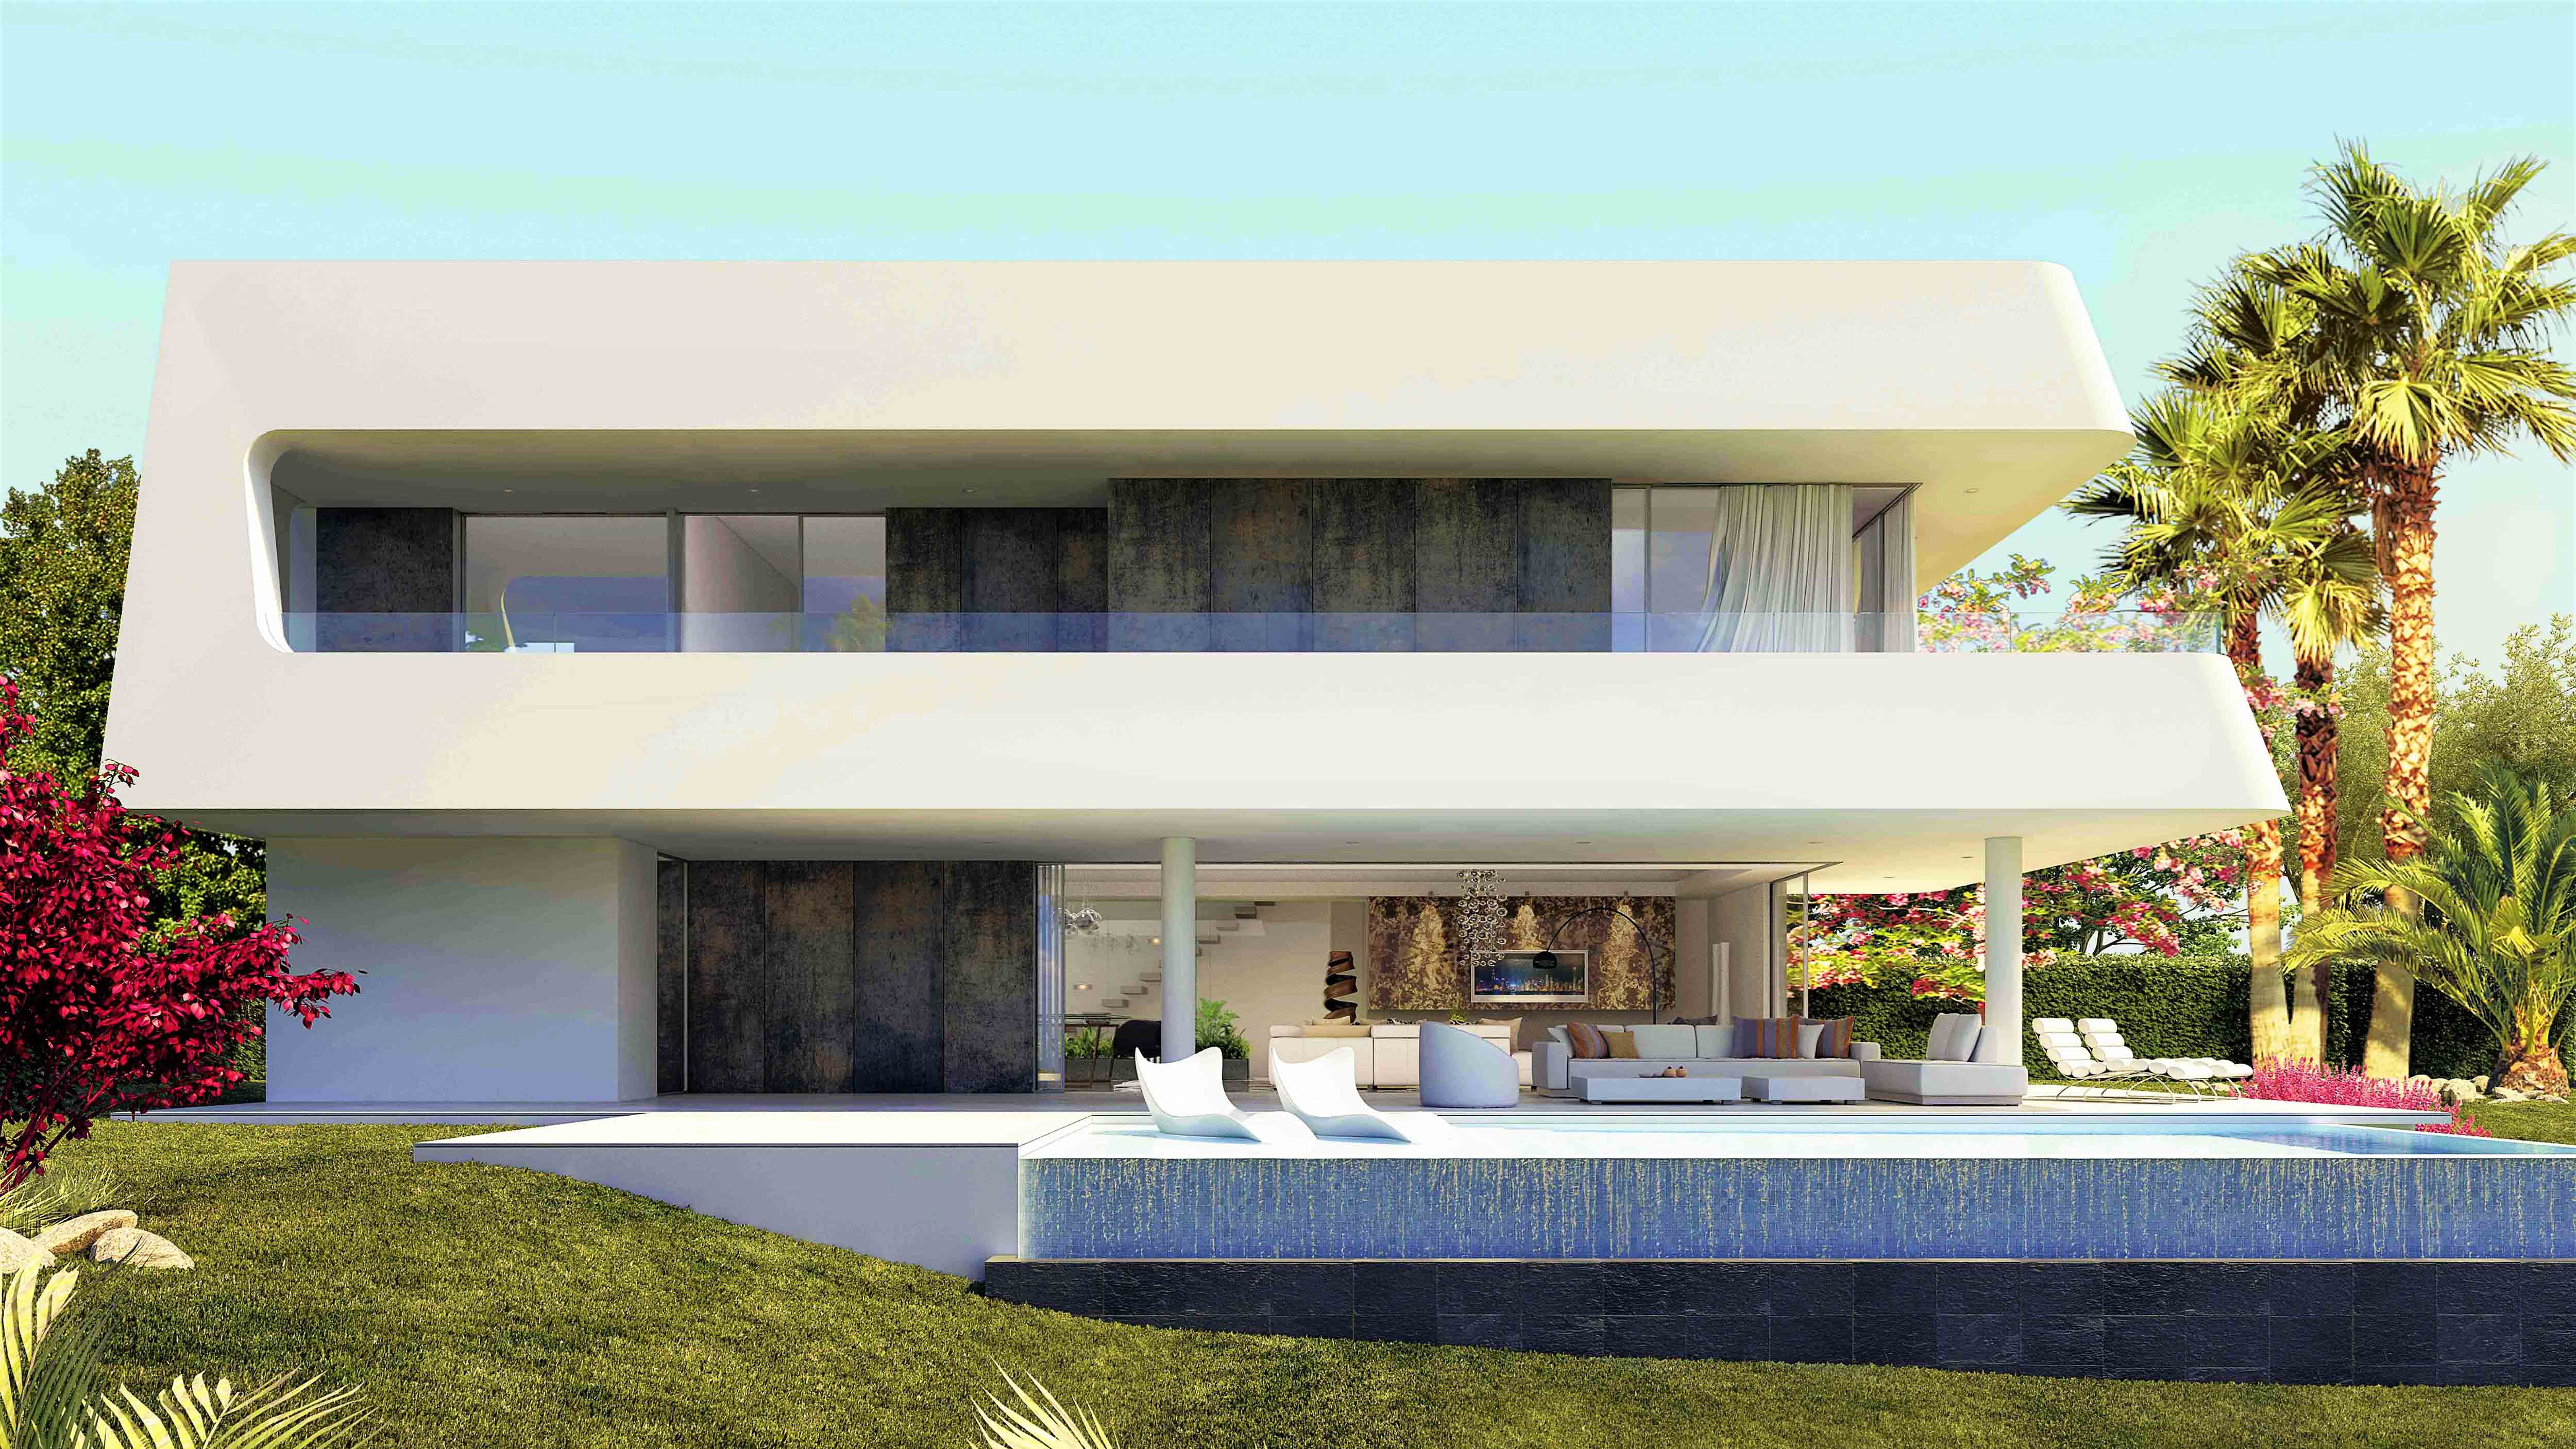 You can design your HOME in Estepona